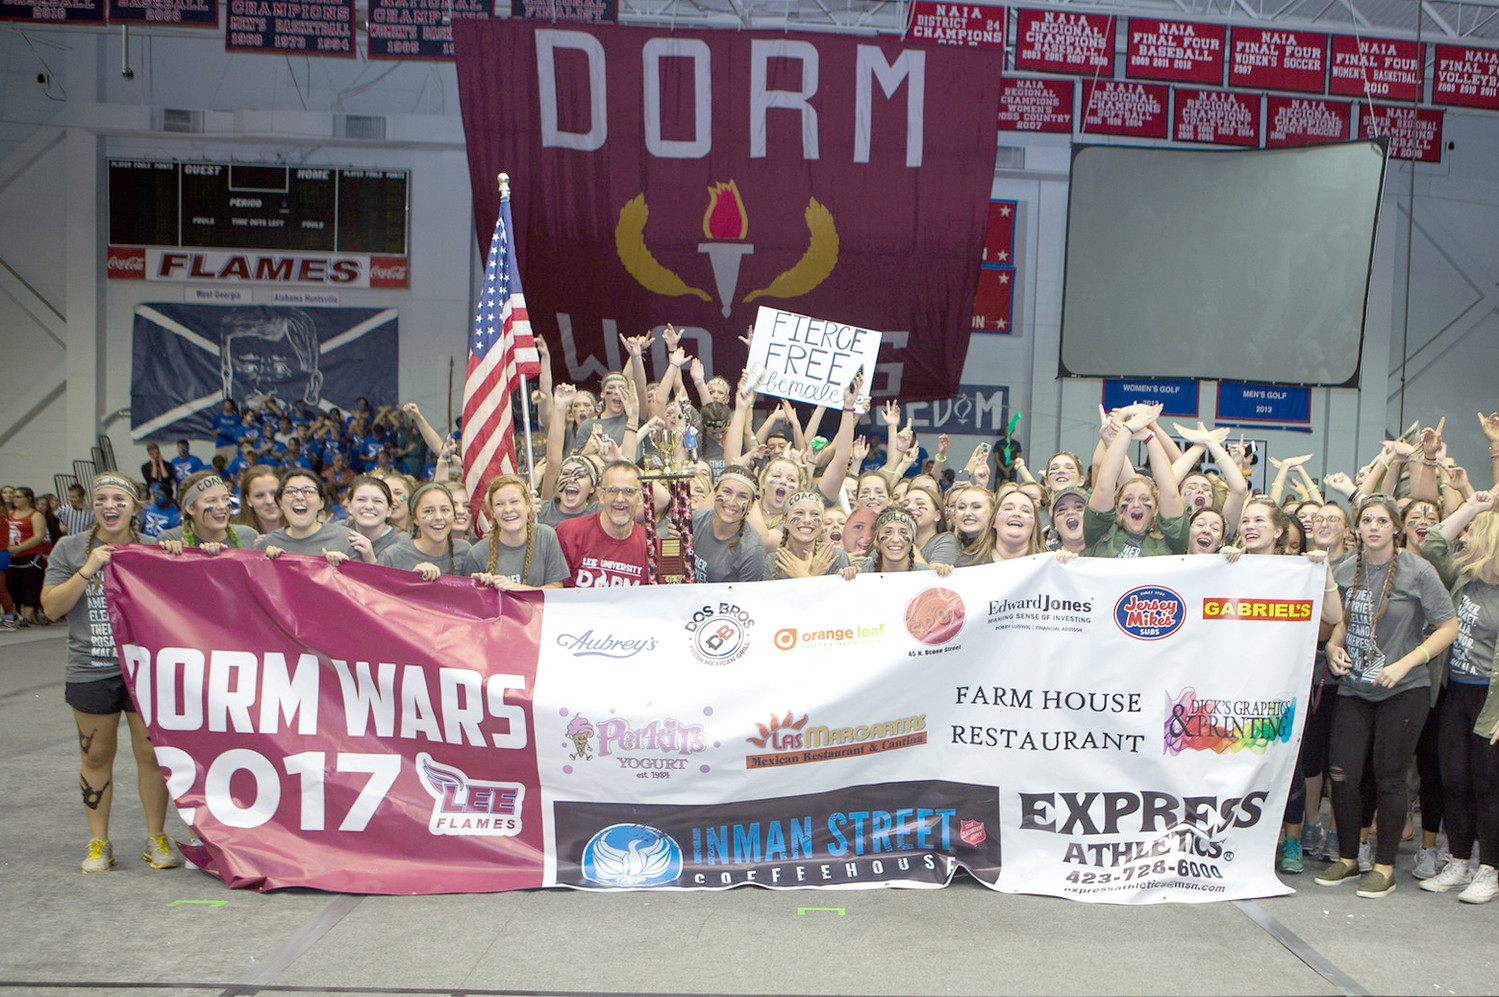 Sharp Davis, a female residence hall, claimed the women's trophy in Lee University's Dorm Wars.